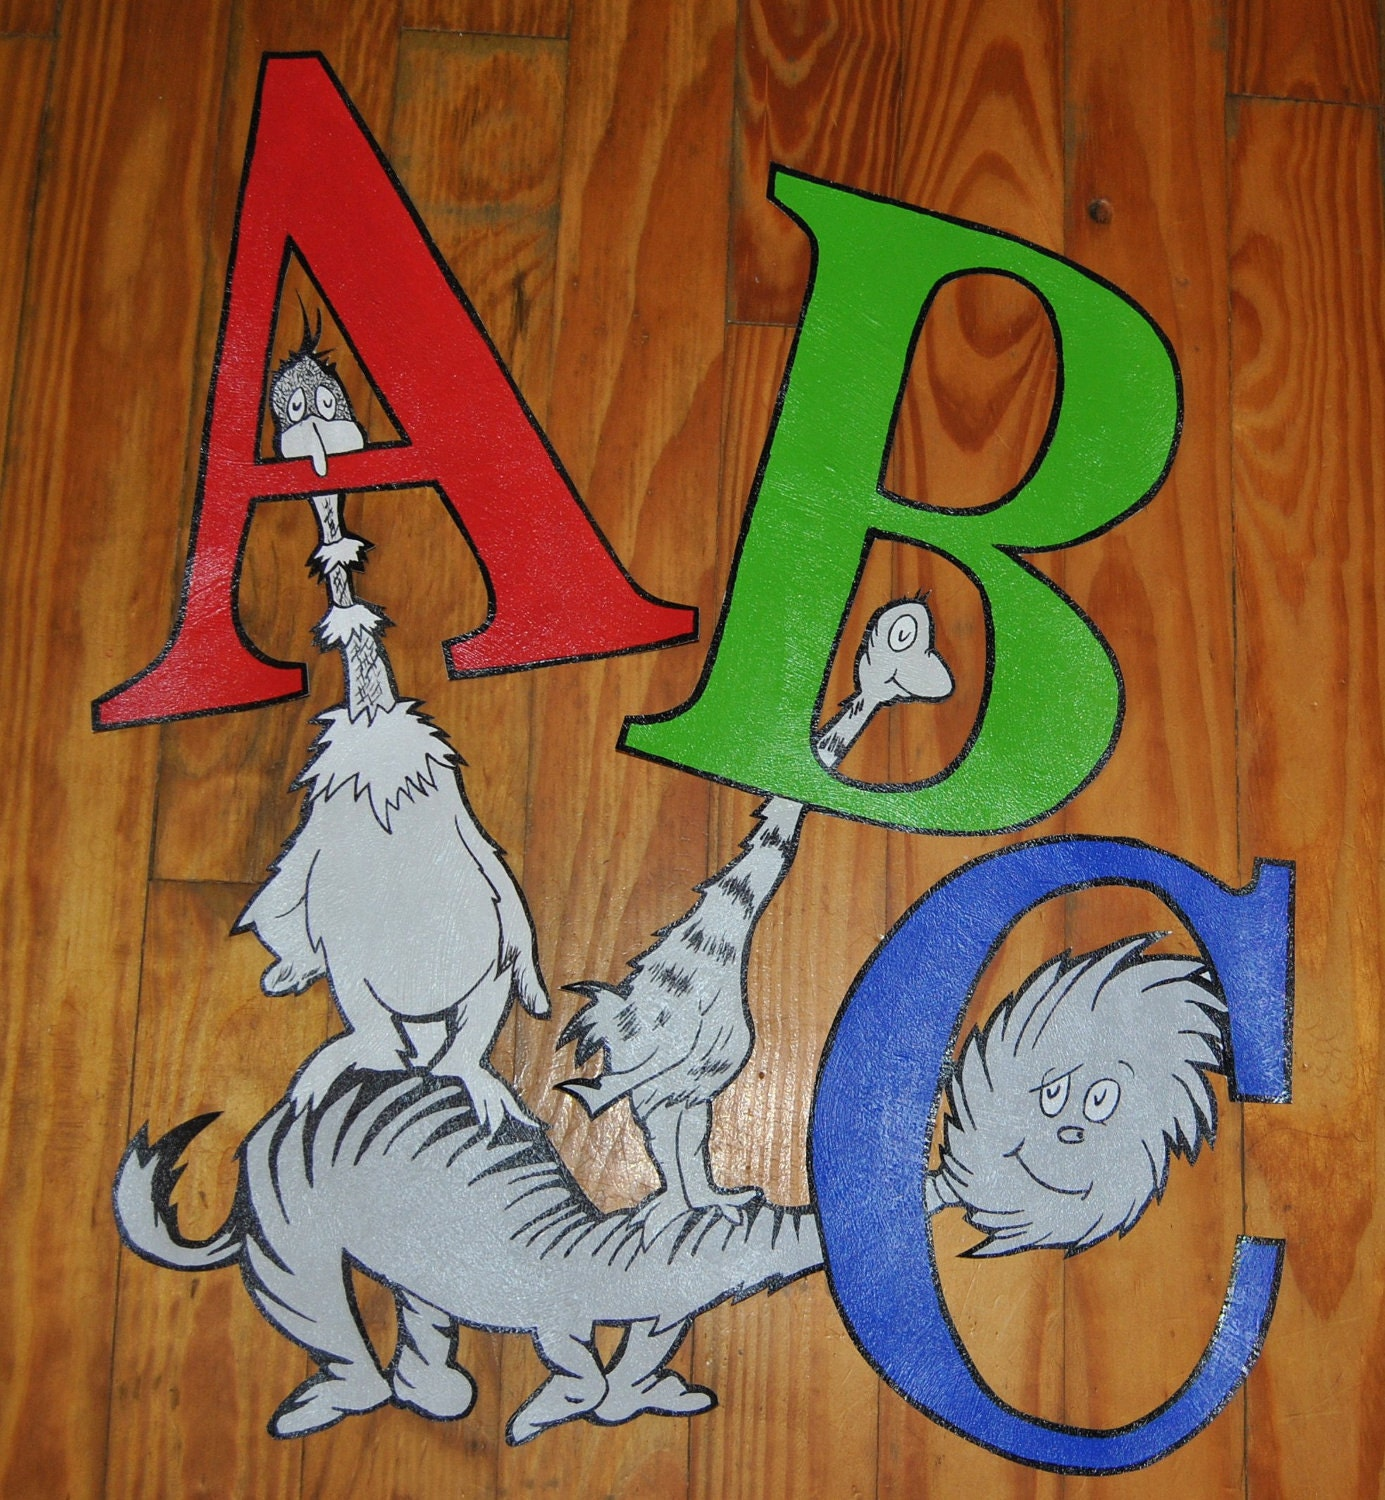 Dr seuss abc wallpaper mural wall decor for Dr seuss wall mural